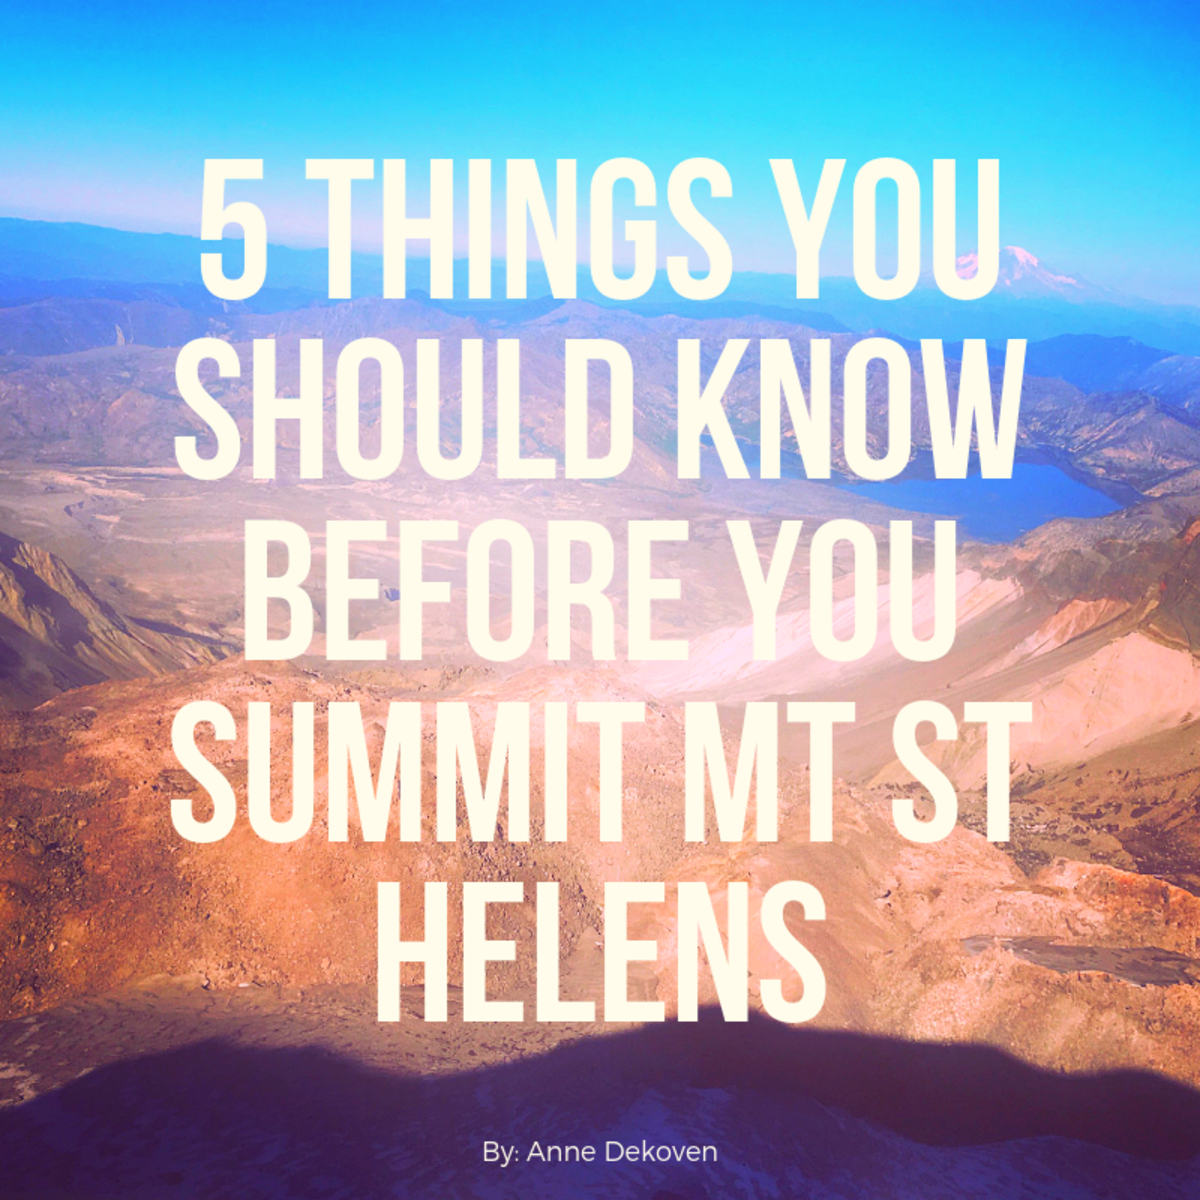 5-things-you-should-know-before-you-summit-mt-st-helens